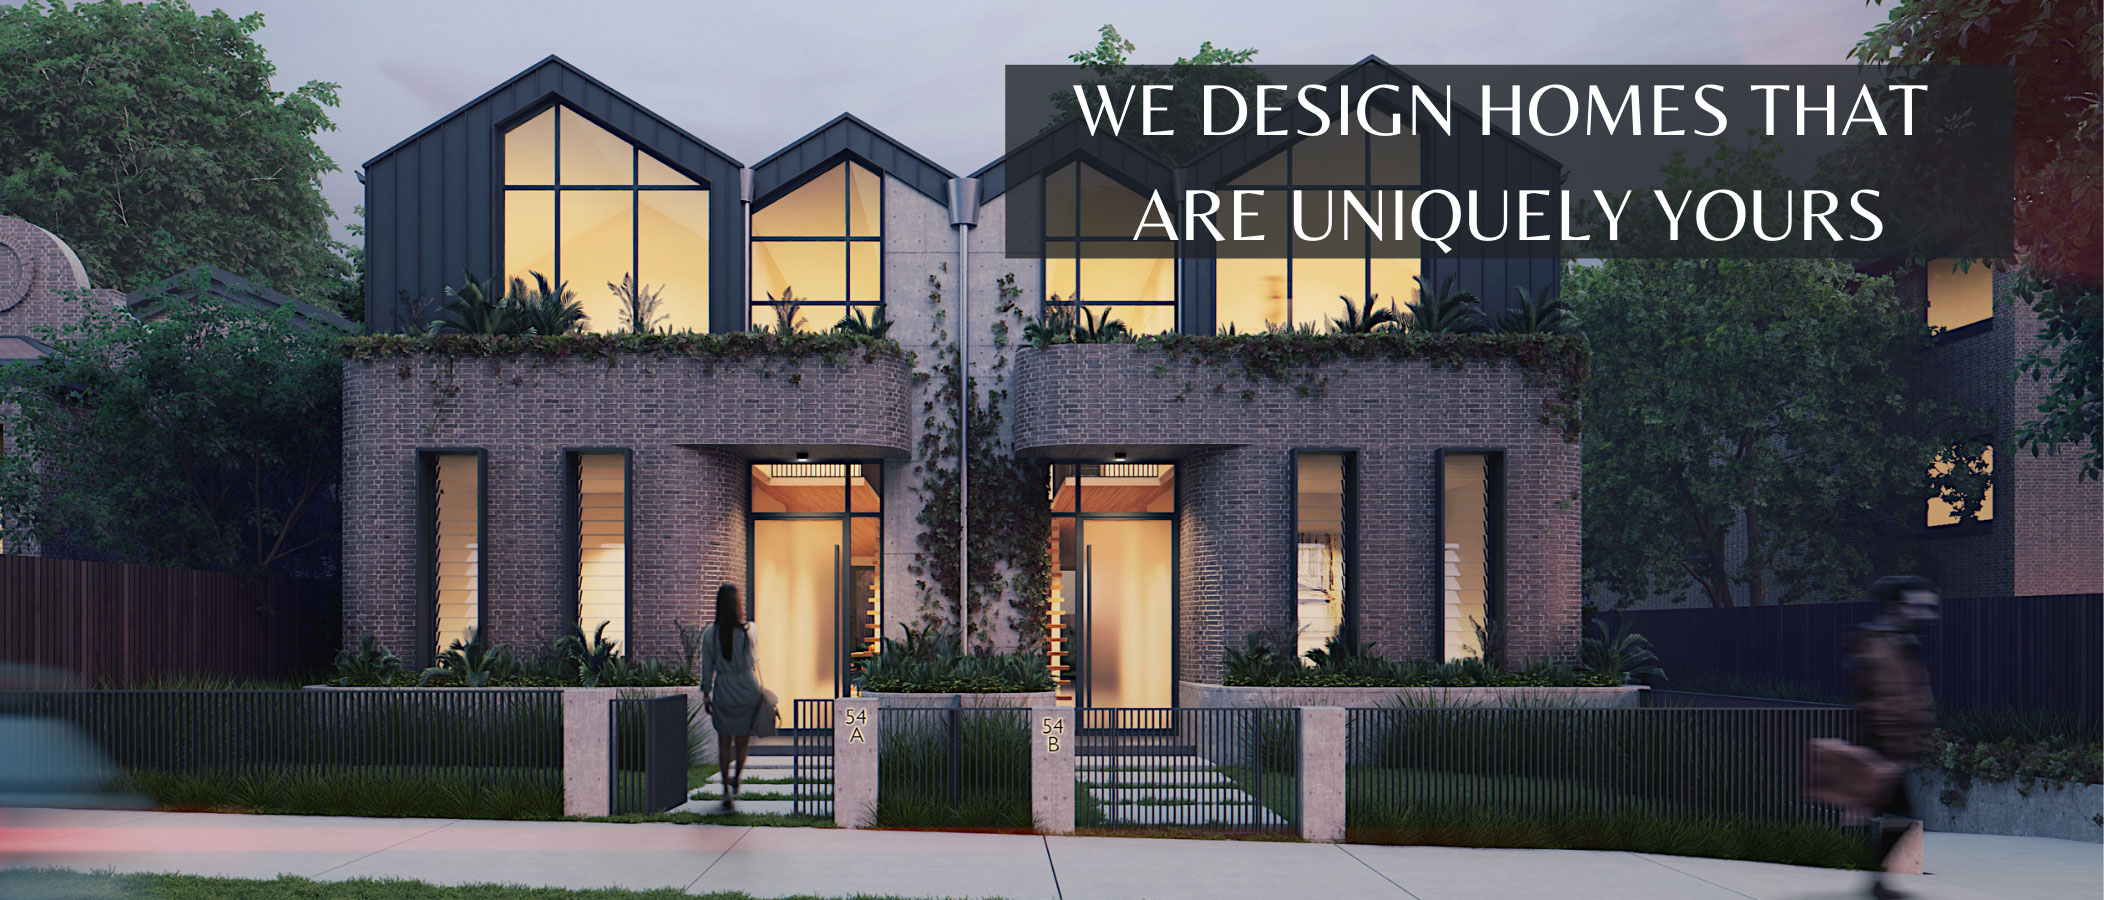 The Site Foreman - We Design Homes That Are Uniquely Yours